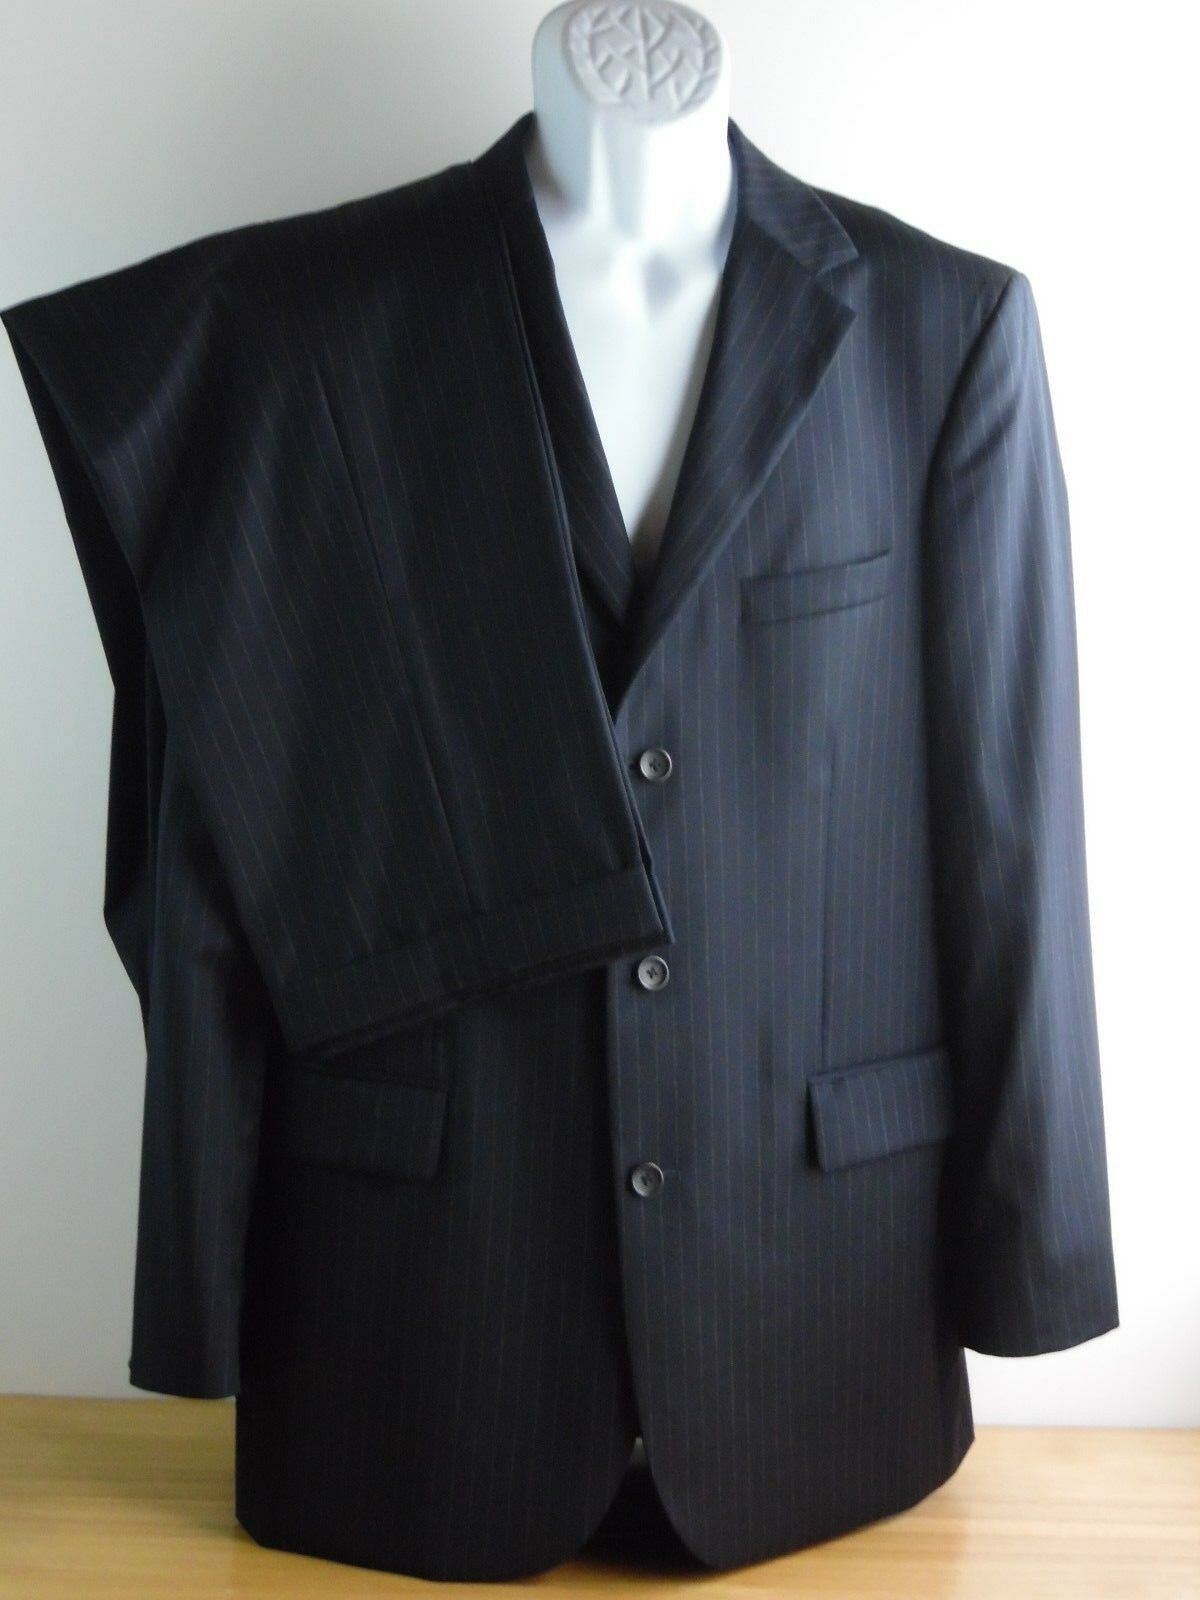 Mens 44L J CREW blueE  PINSTRIPE 2 peace SUIT 36x30 dress formal suite